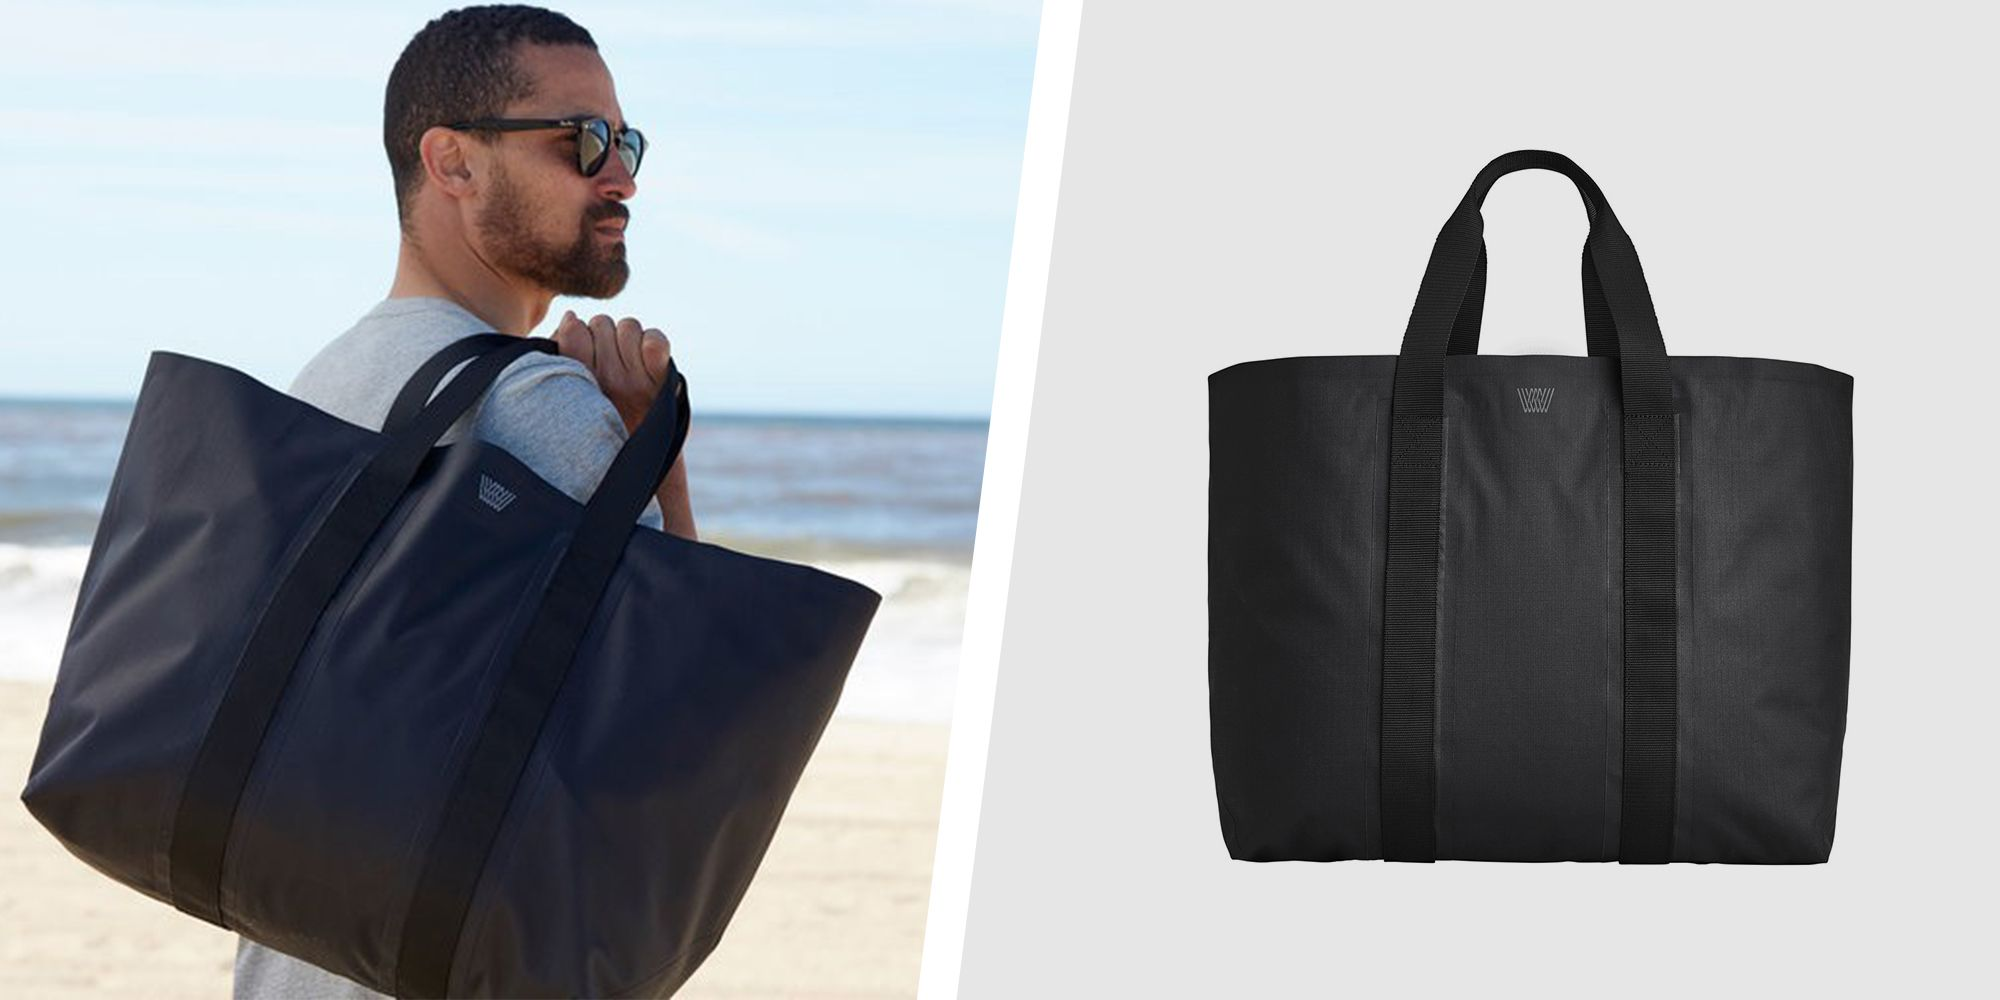 The Must Haves: The 6 Best Summer Bags for Men